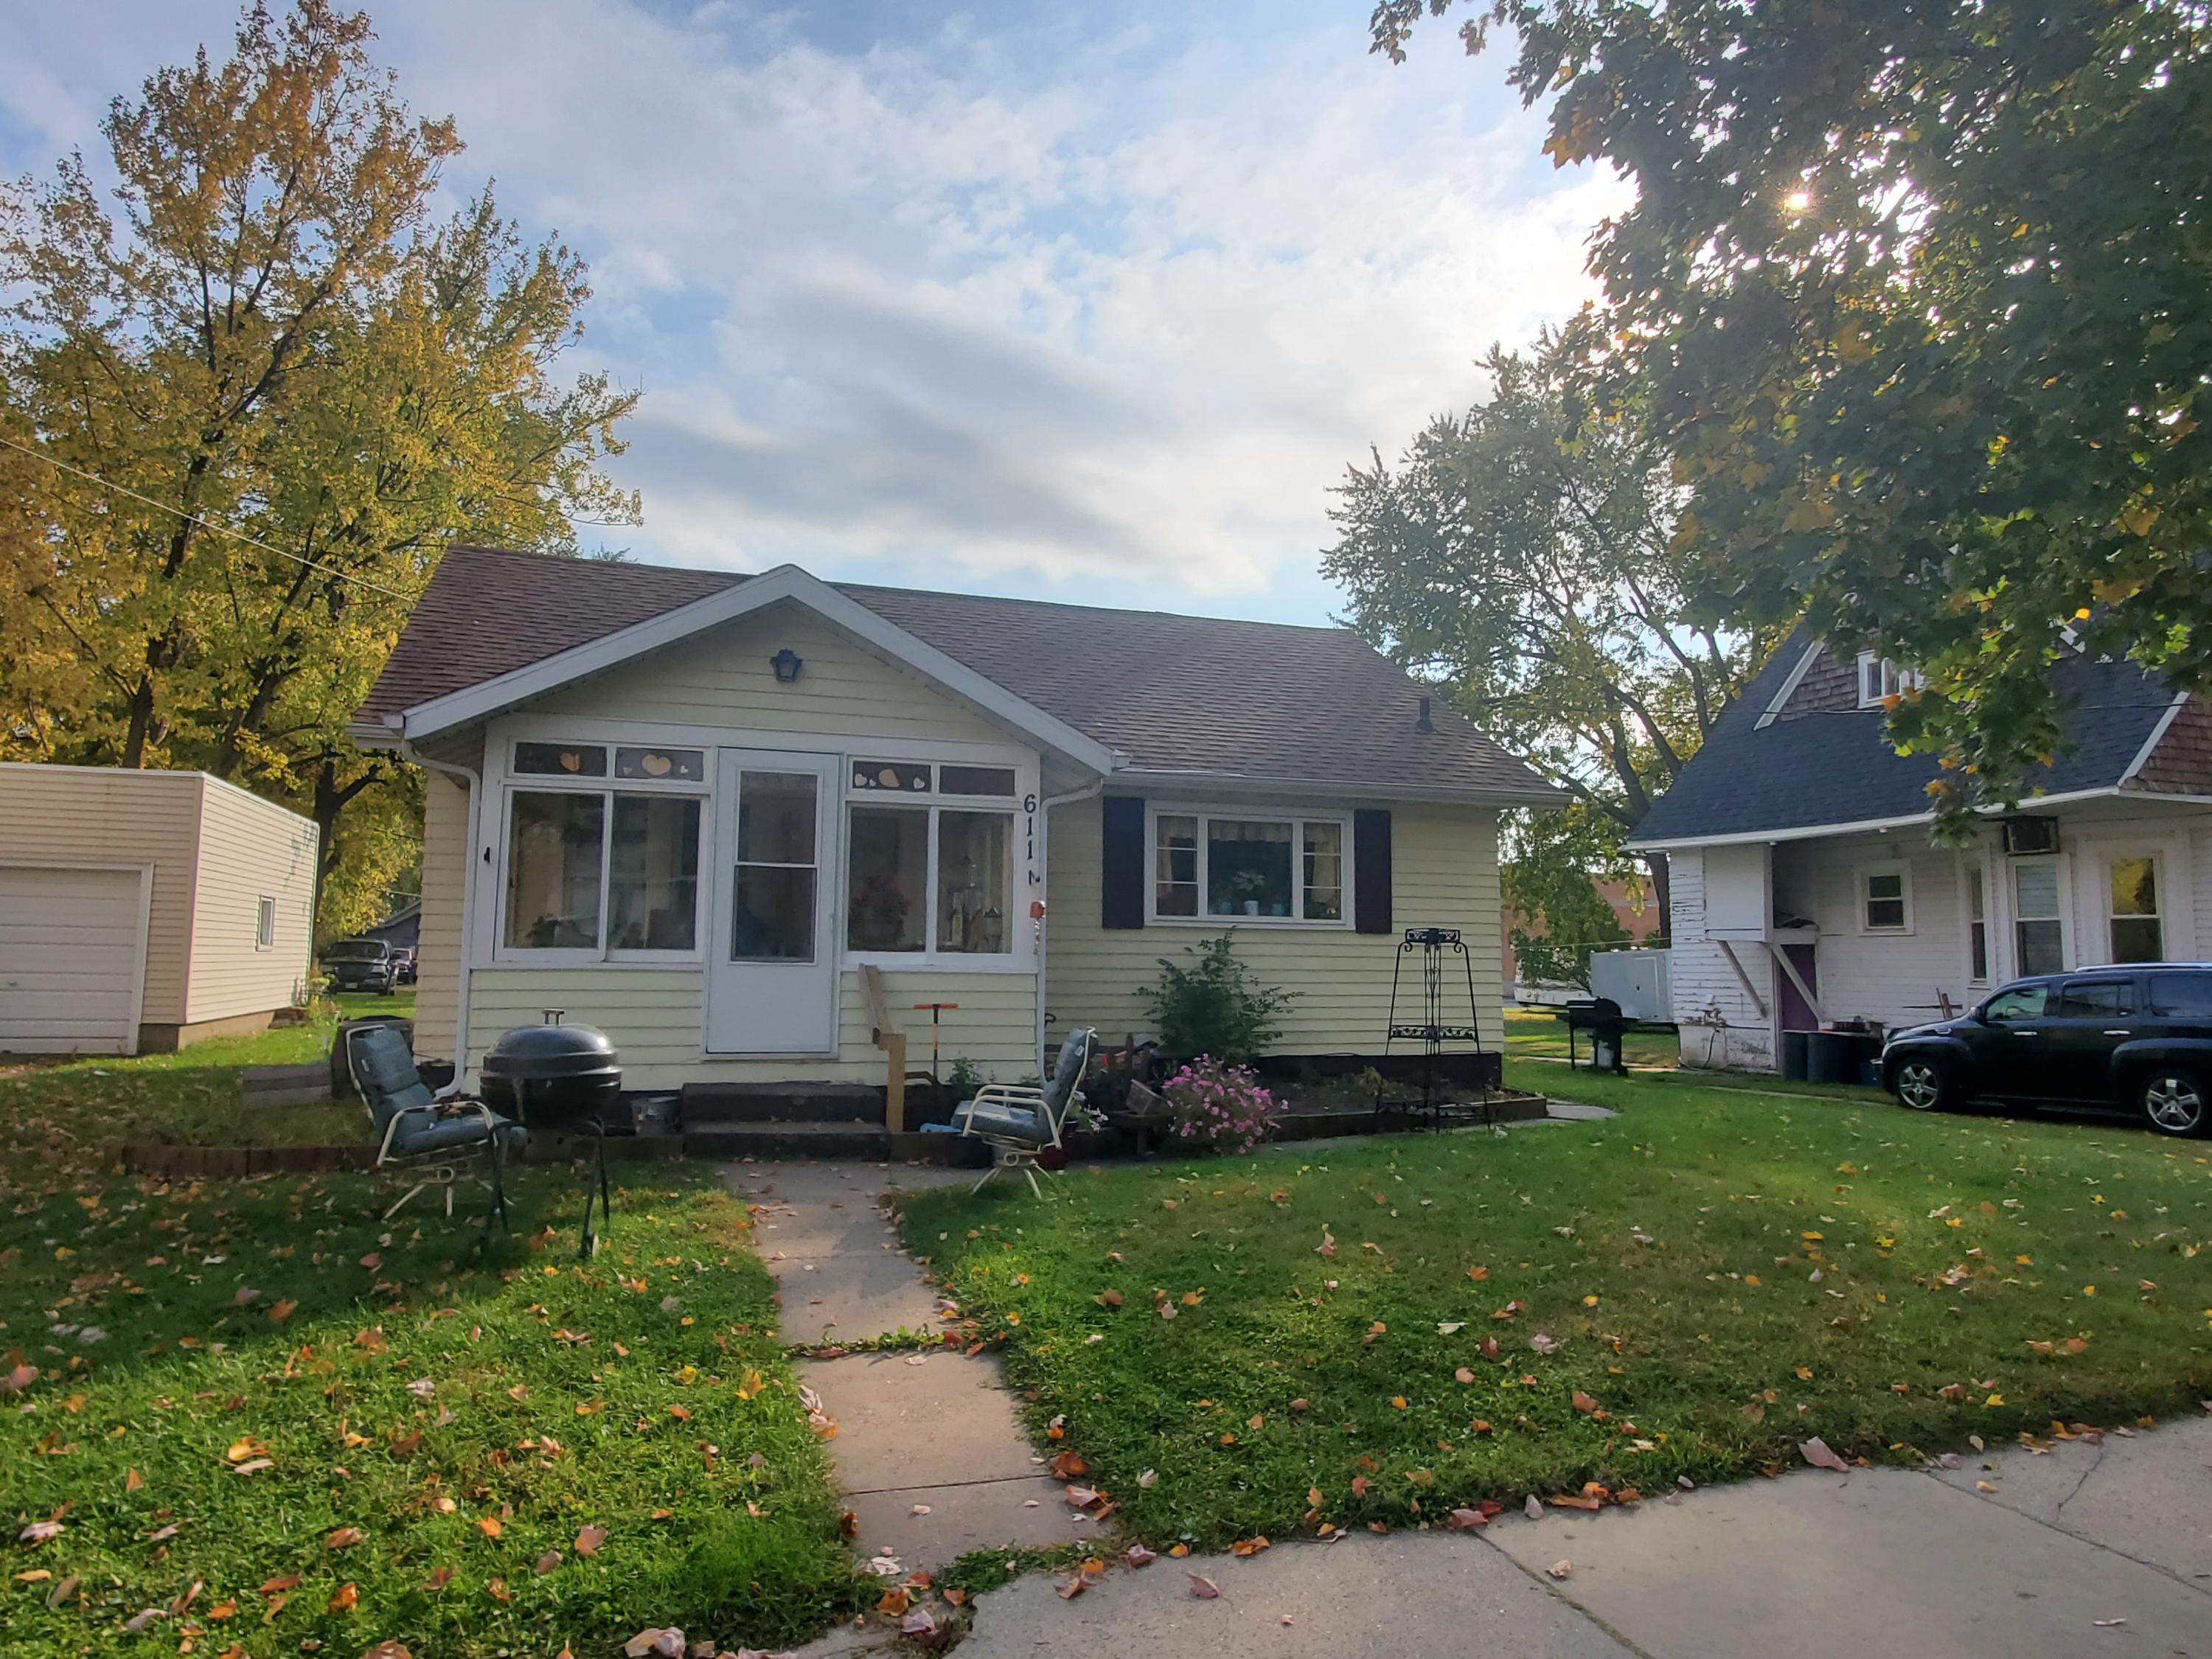 611 Hill St, Sparta, Wisconsin 54656, 4 Bedrooms Bedrooms, 8 Rooms Rooms,4 BathroomsBathrooms,Single-family,For Sale,Hill St,1714258